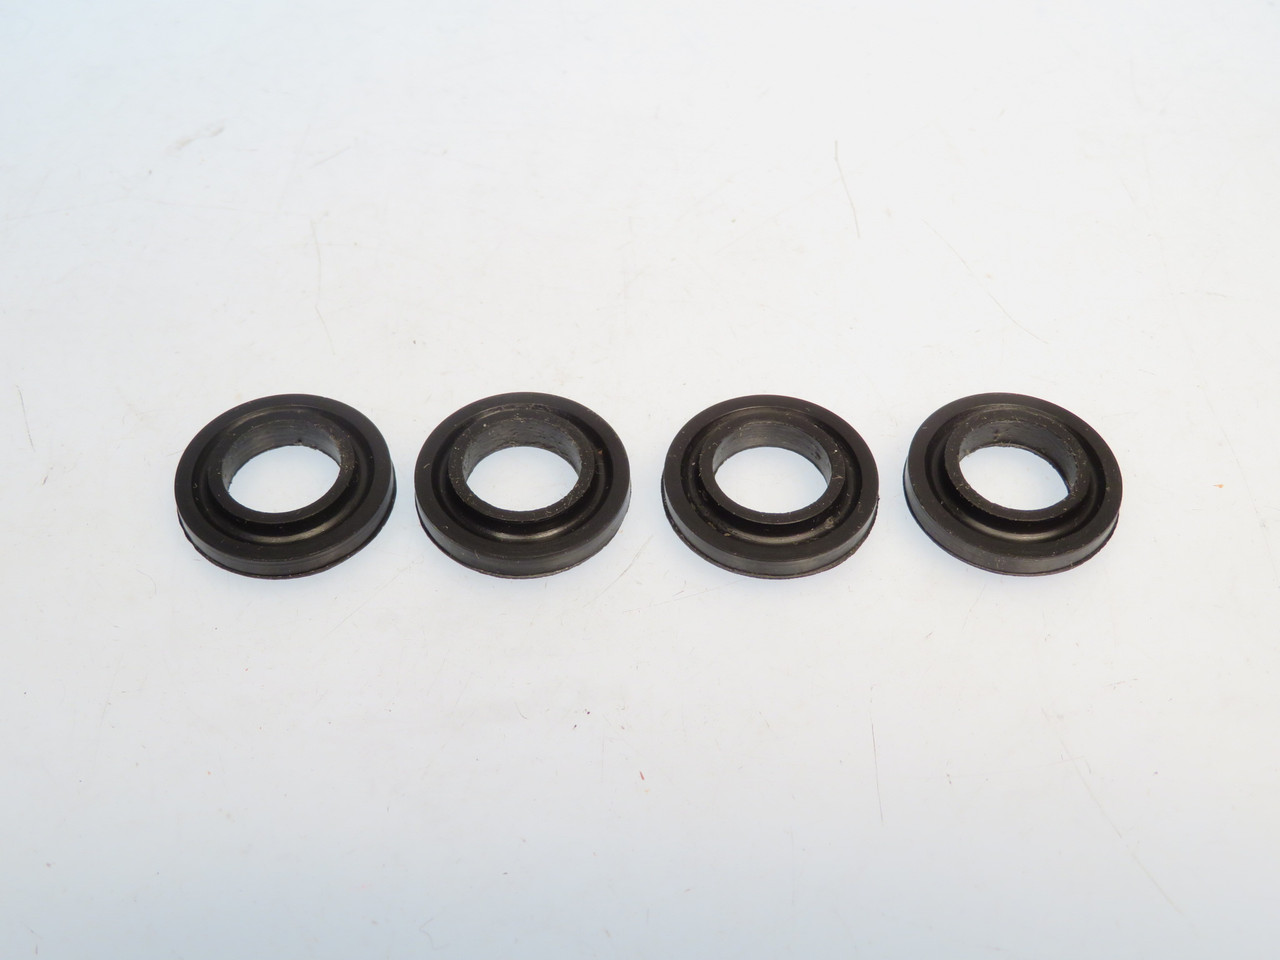 MGA Austin Healey Sprite Triumph TR3 TR4 & MG Magnette S.U. Brand H Series Carburetor Float Bowl Mounting Grommets  AUC1534